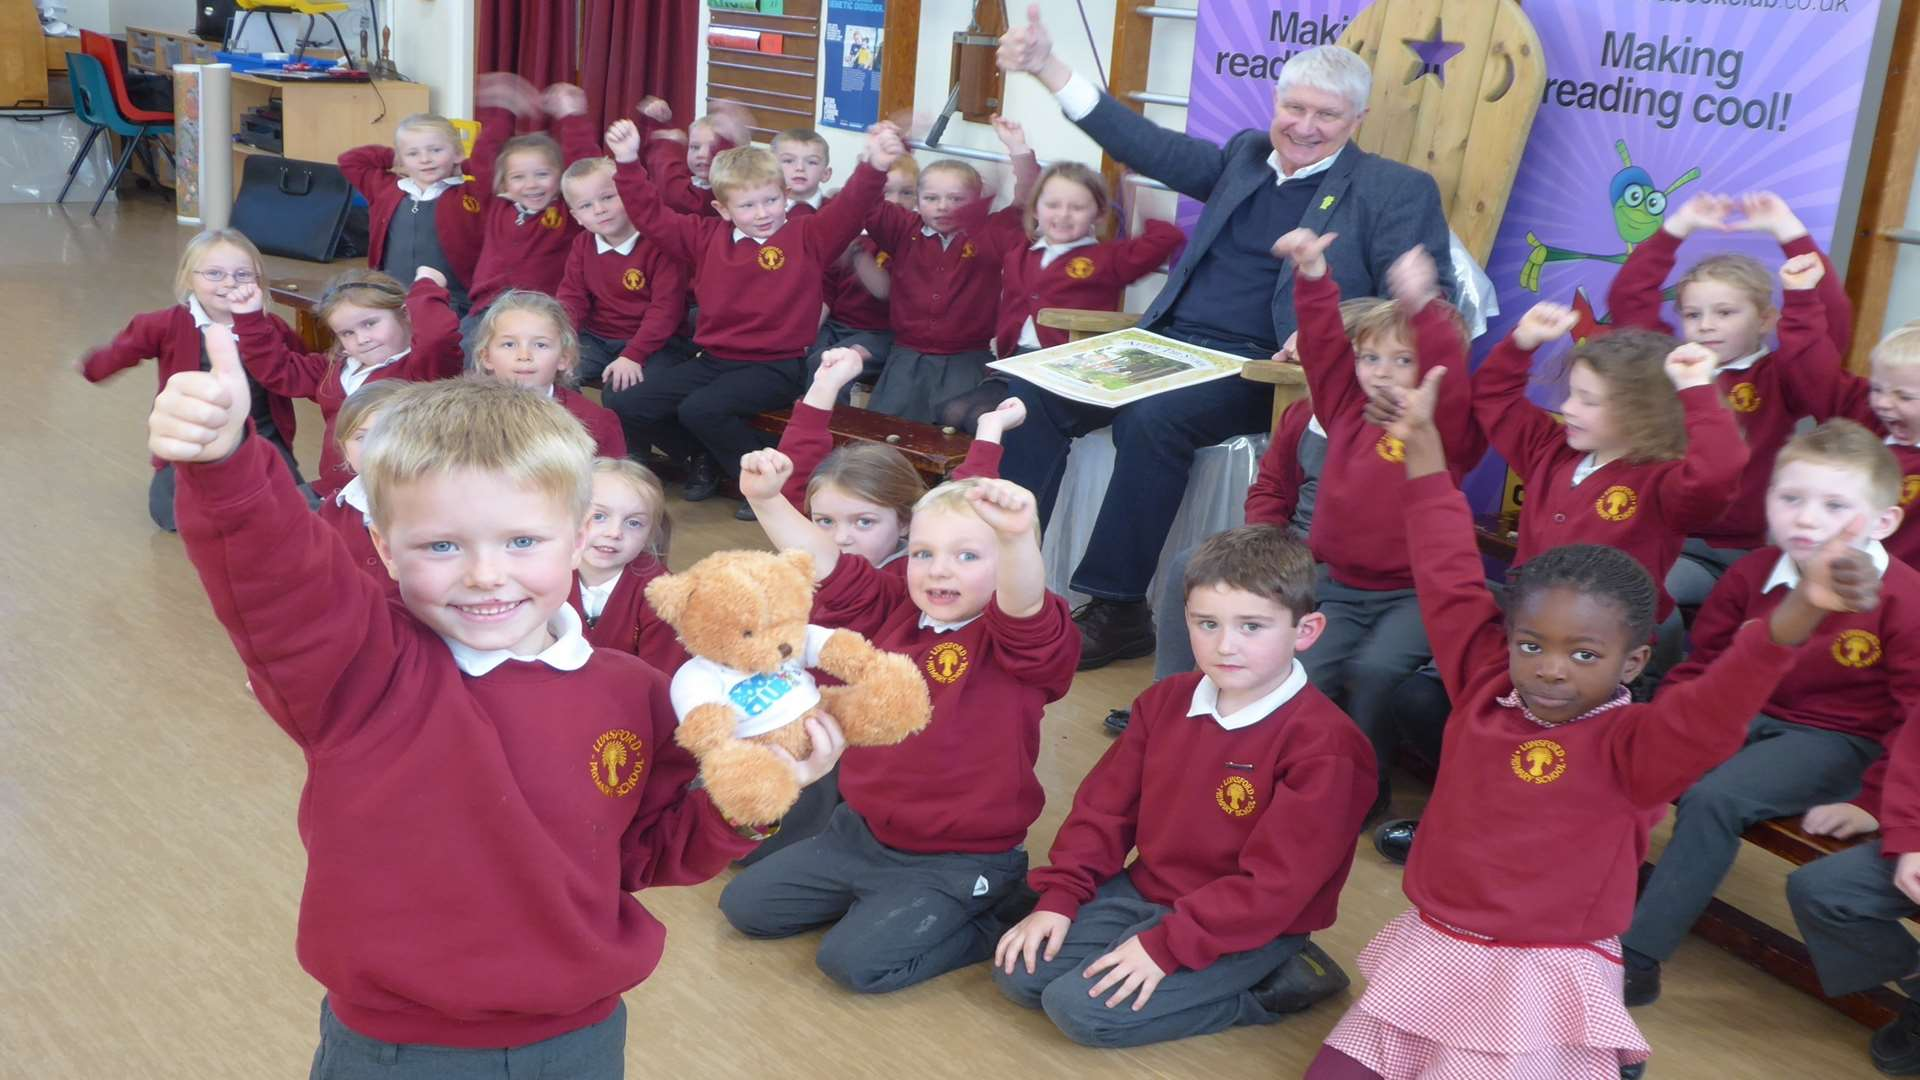 Reiss Coulter, 5, with Buster's mascot Ted cheered on by author and illustrator Nick Butterworth and classmates at Lunsford Primary School, Maidstone. Elephant Class won Kent reading challenge organised through Buster's Book Club.